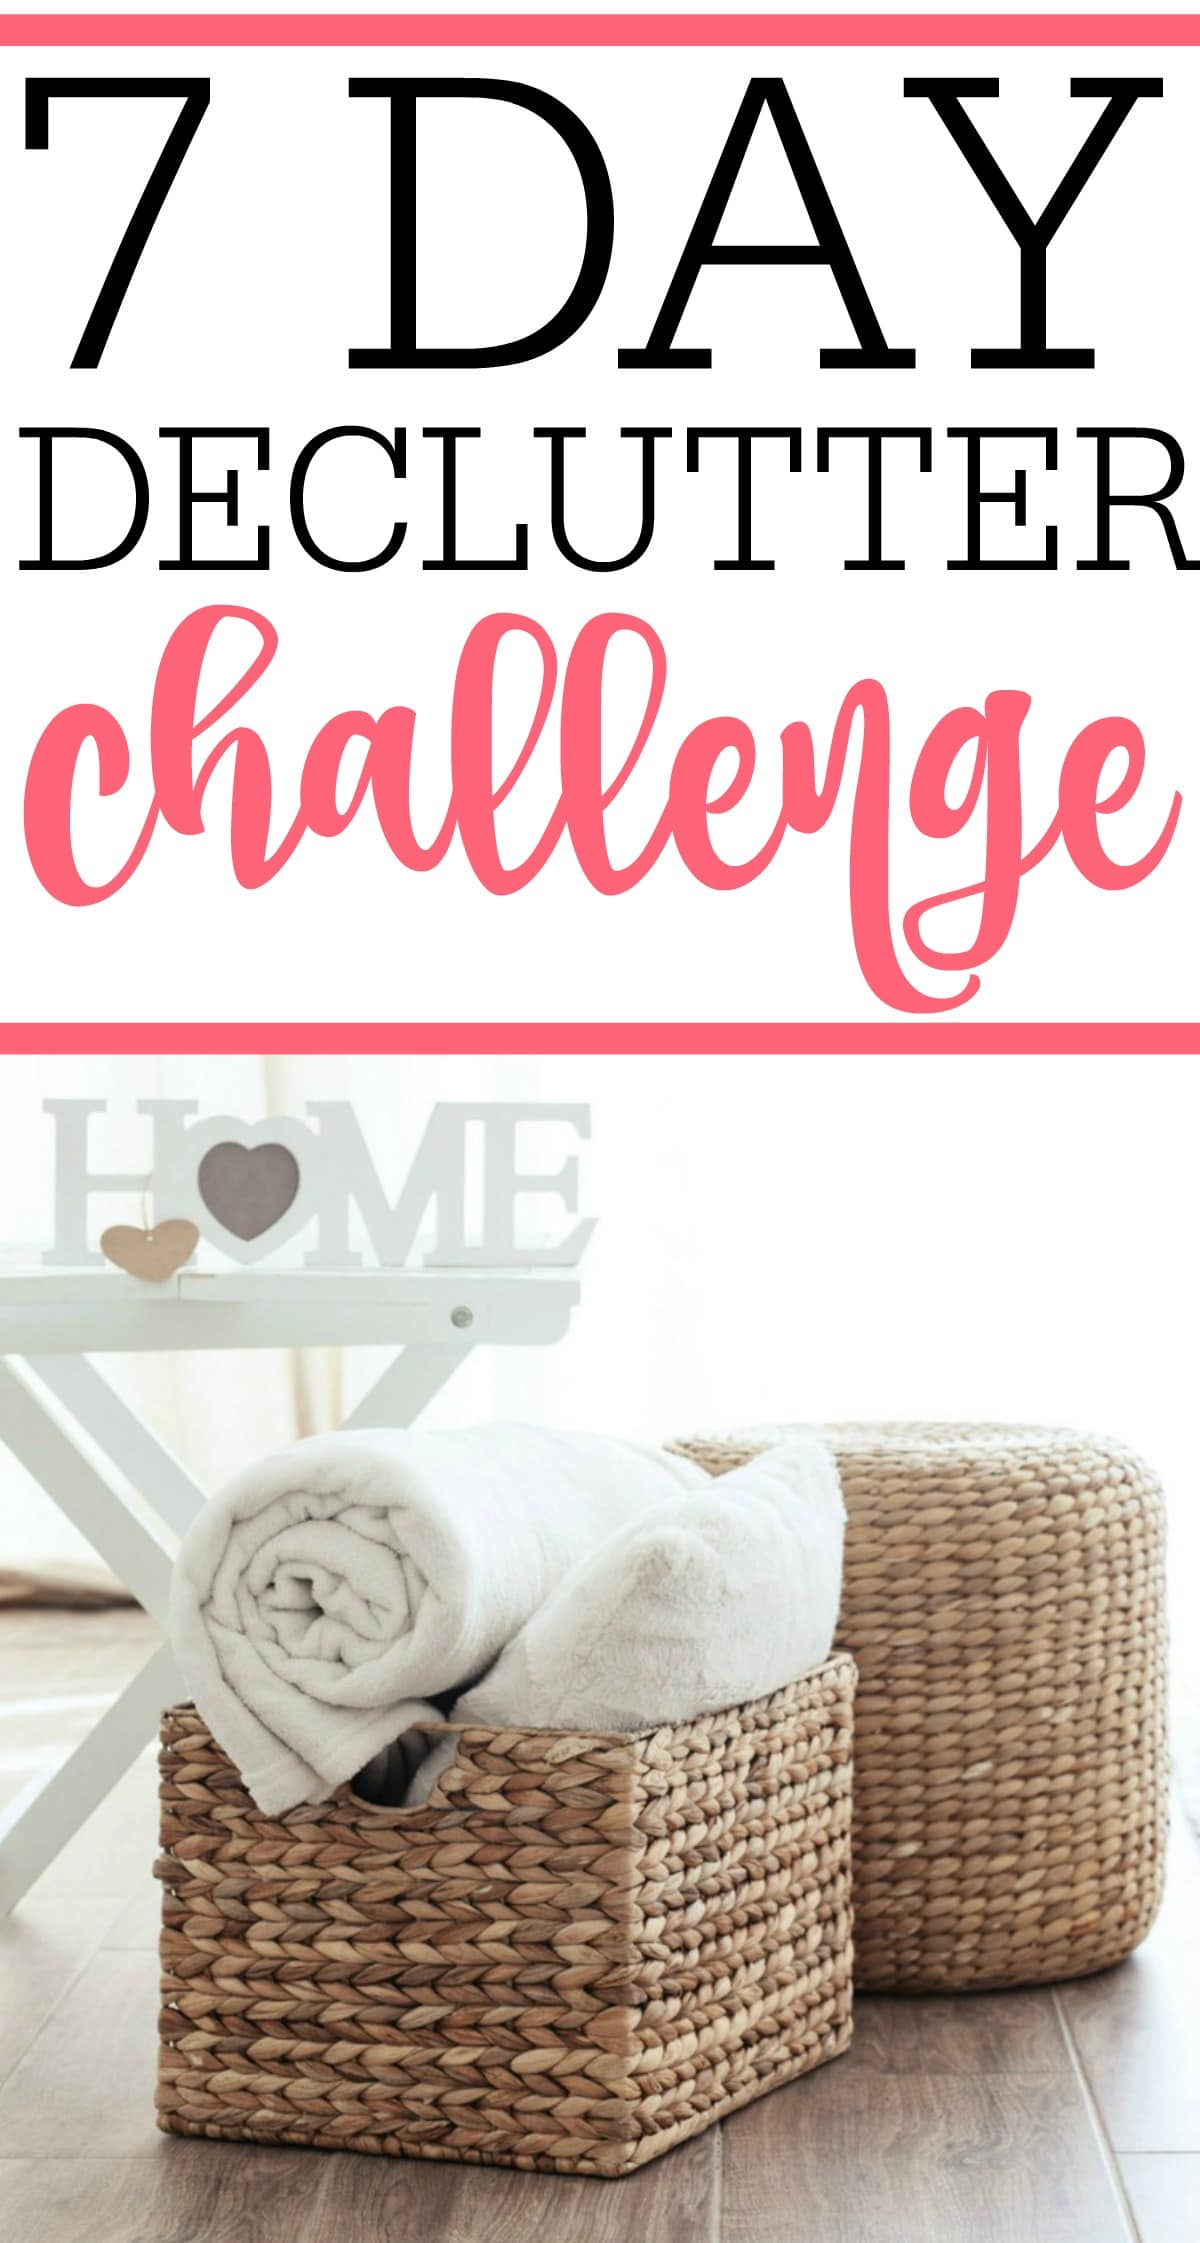 Get rid of clutter and get more organized with this 7 day decluttering challenge. You will be amazed at how a few minutes each day leads to a clutter-free home. Eliminate clutter in just days!